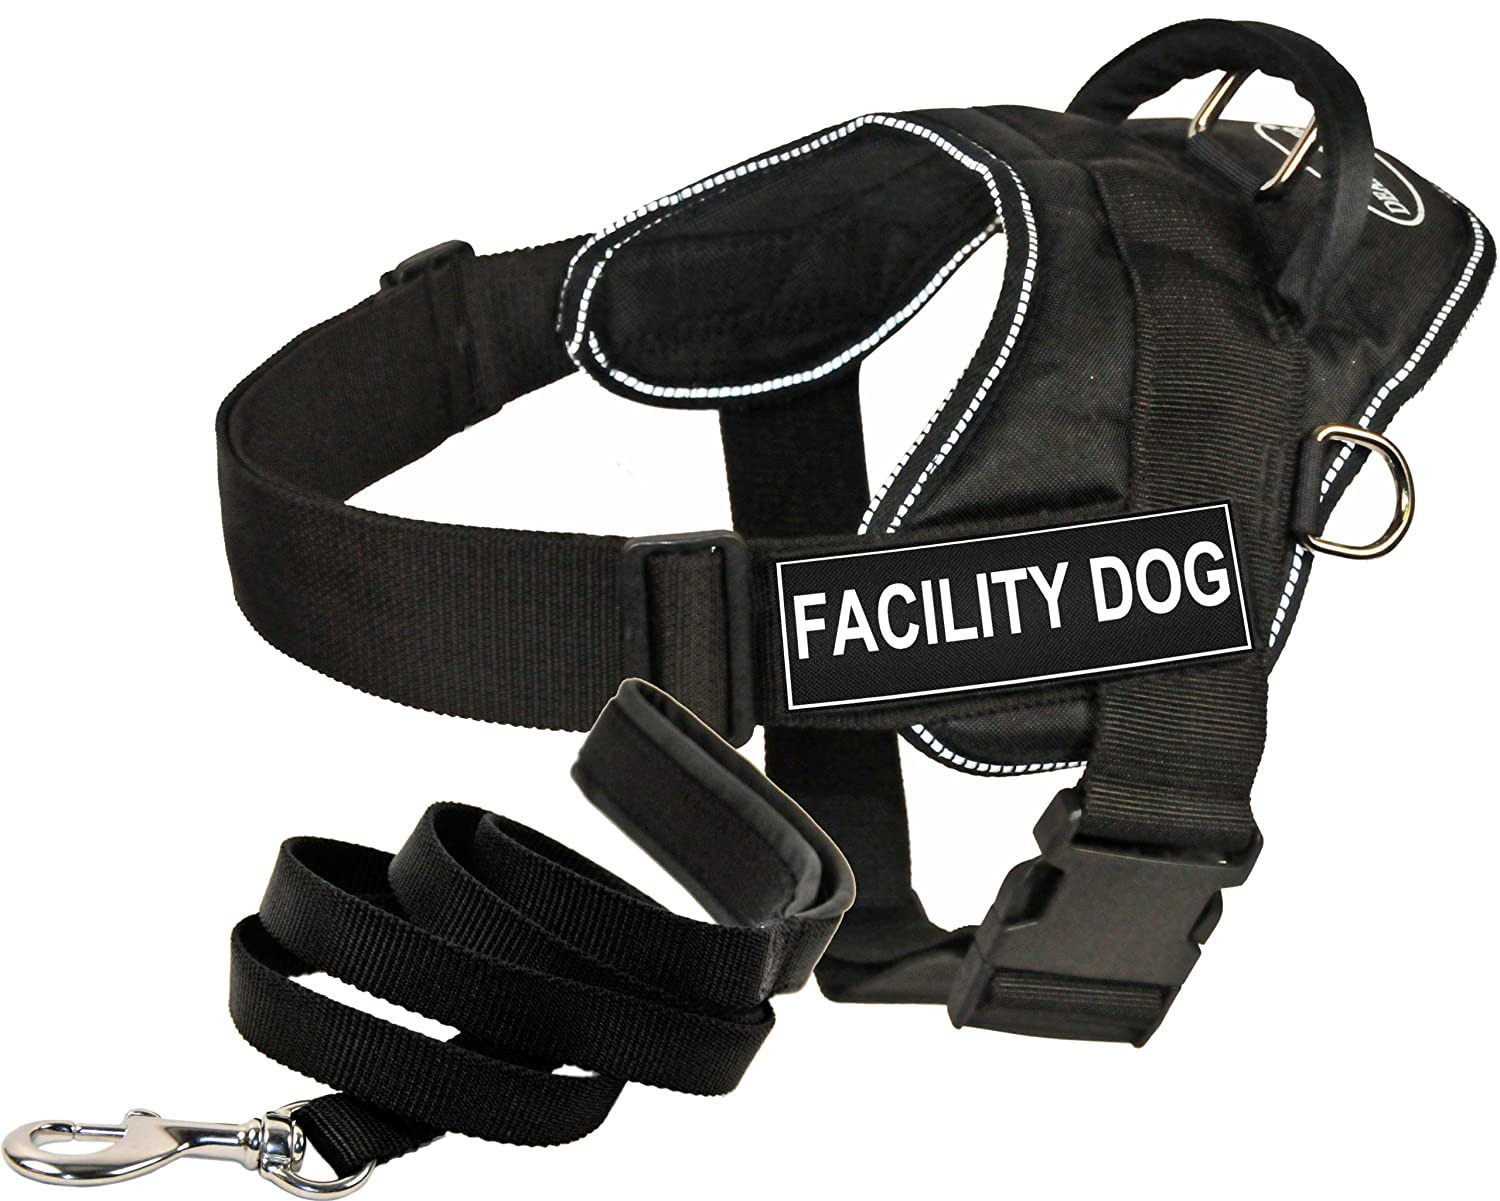 Dean and Tyler Bundle One DT Fun Works  Harness, Facility Dog, Reflective, Medium + One Padded Puppy  Leash, 6 FT Stainless Steel Snap Black